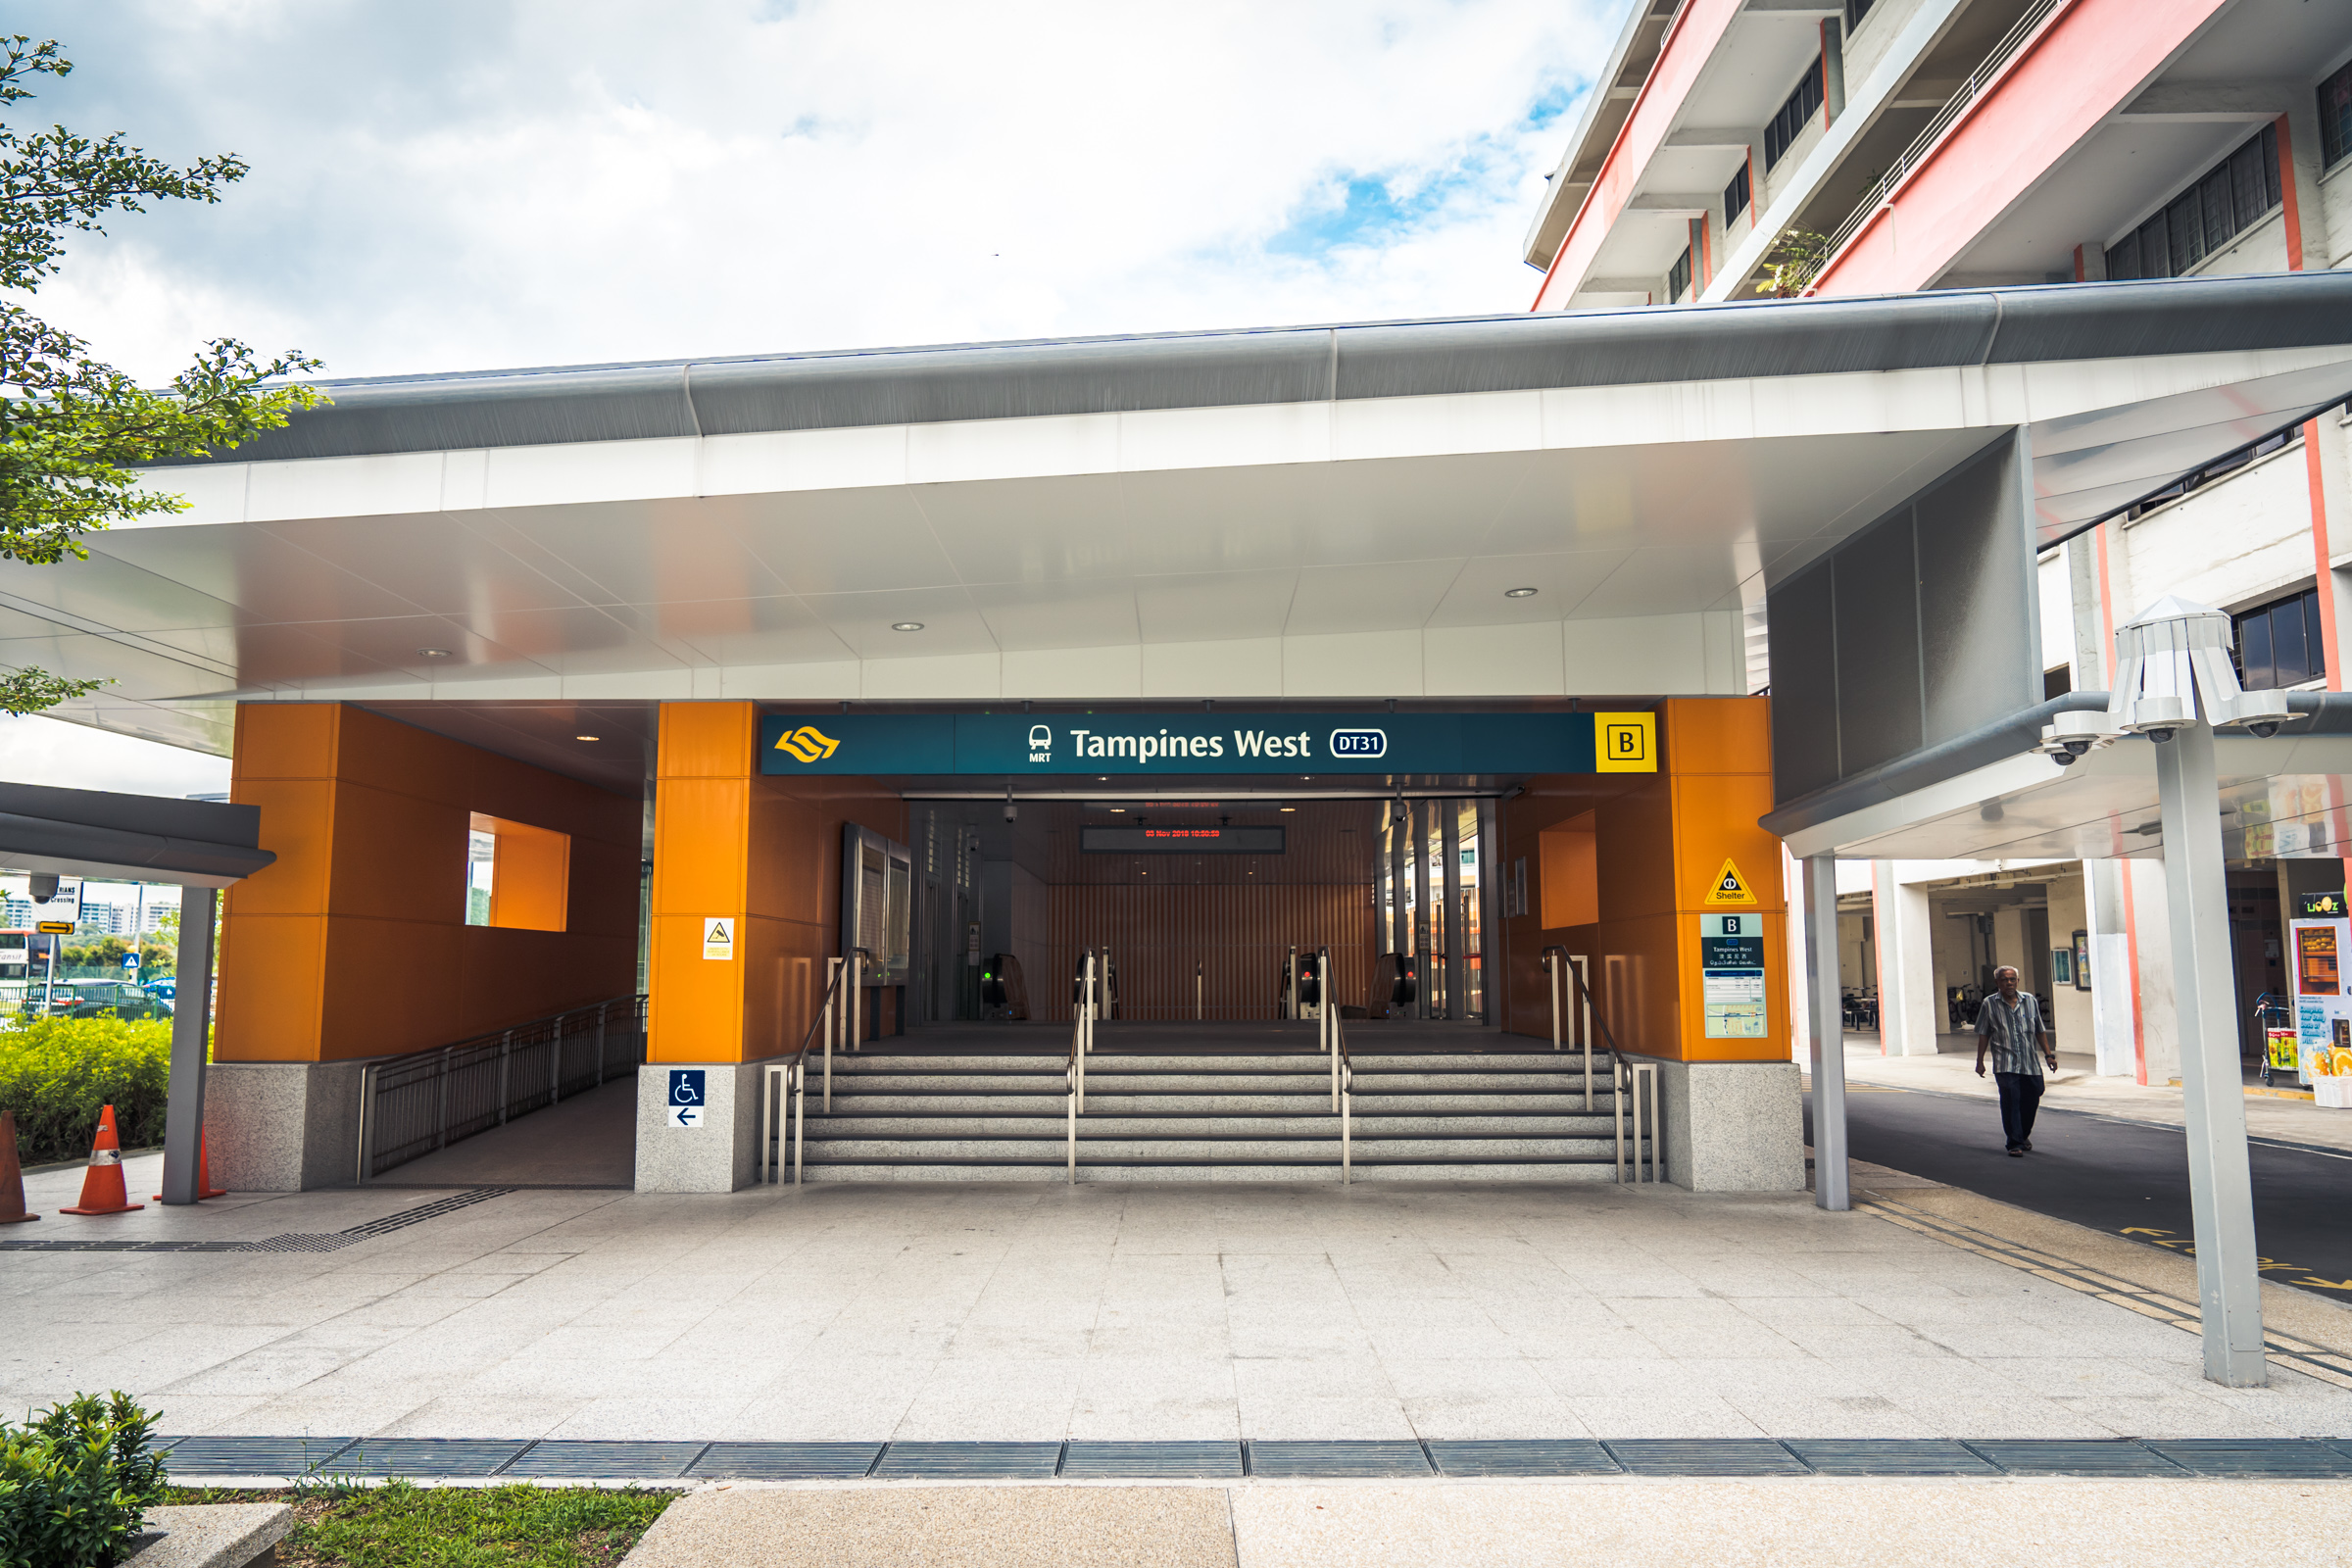 Exterior shot of Tampines West MRT station